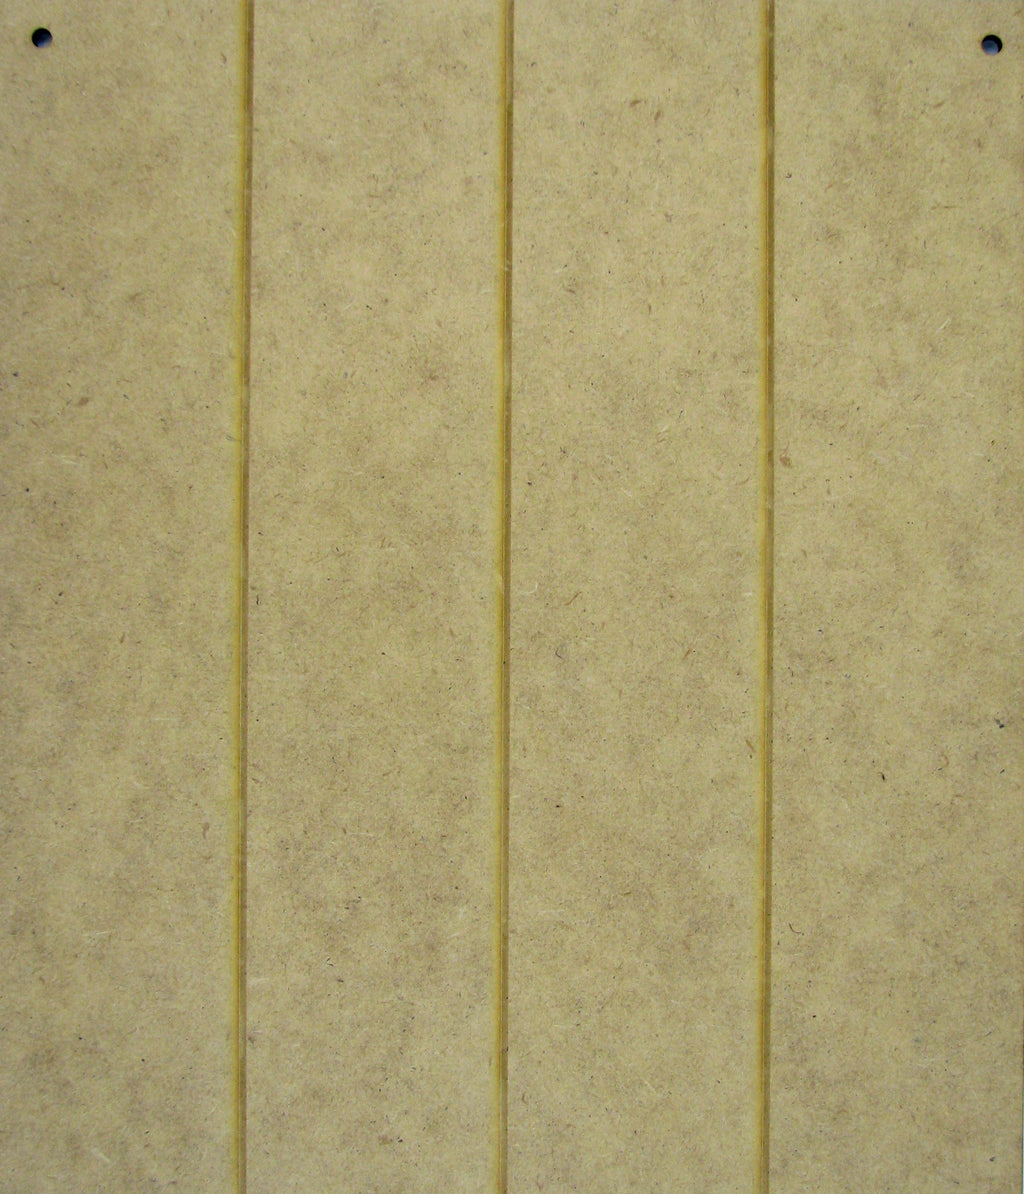 Vertical Grooved Board